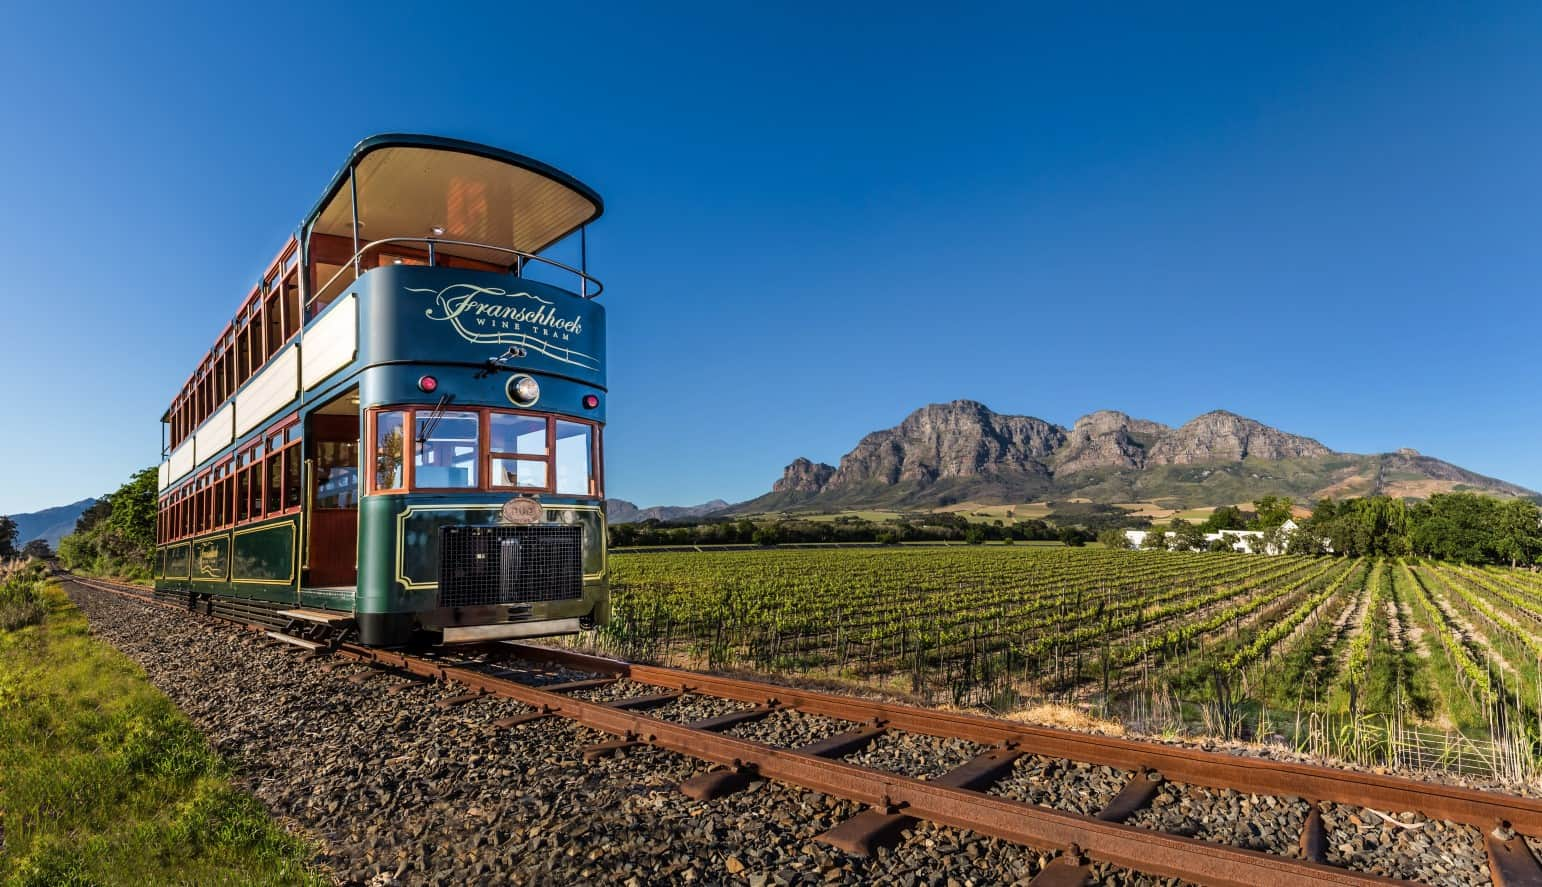 tram on railroad tracks going past vineyards and mountains on a clear day on a Africa food and wine safari